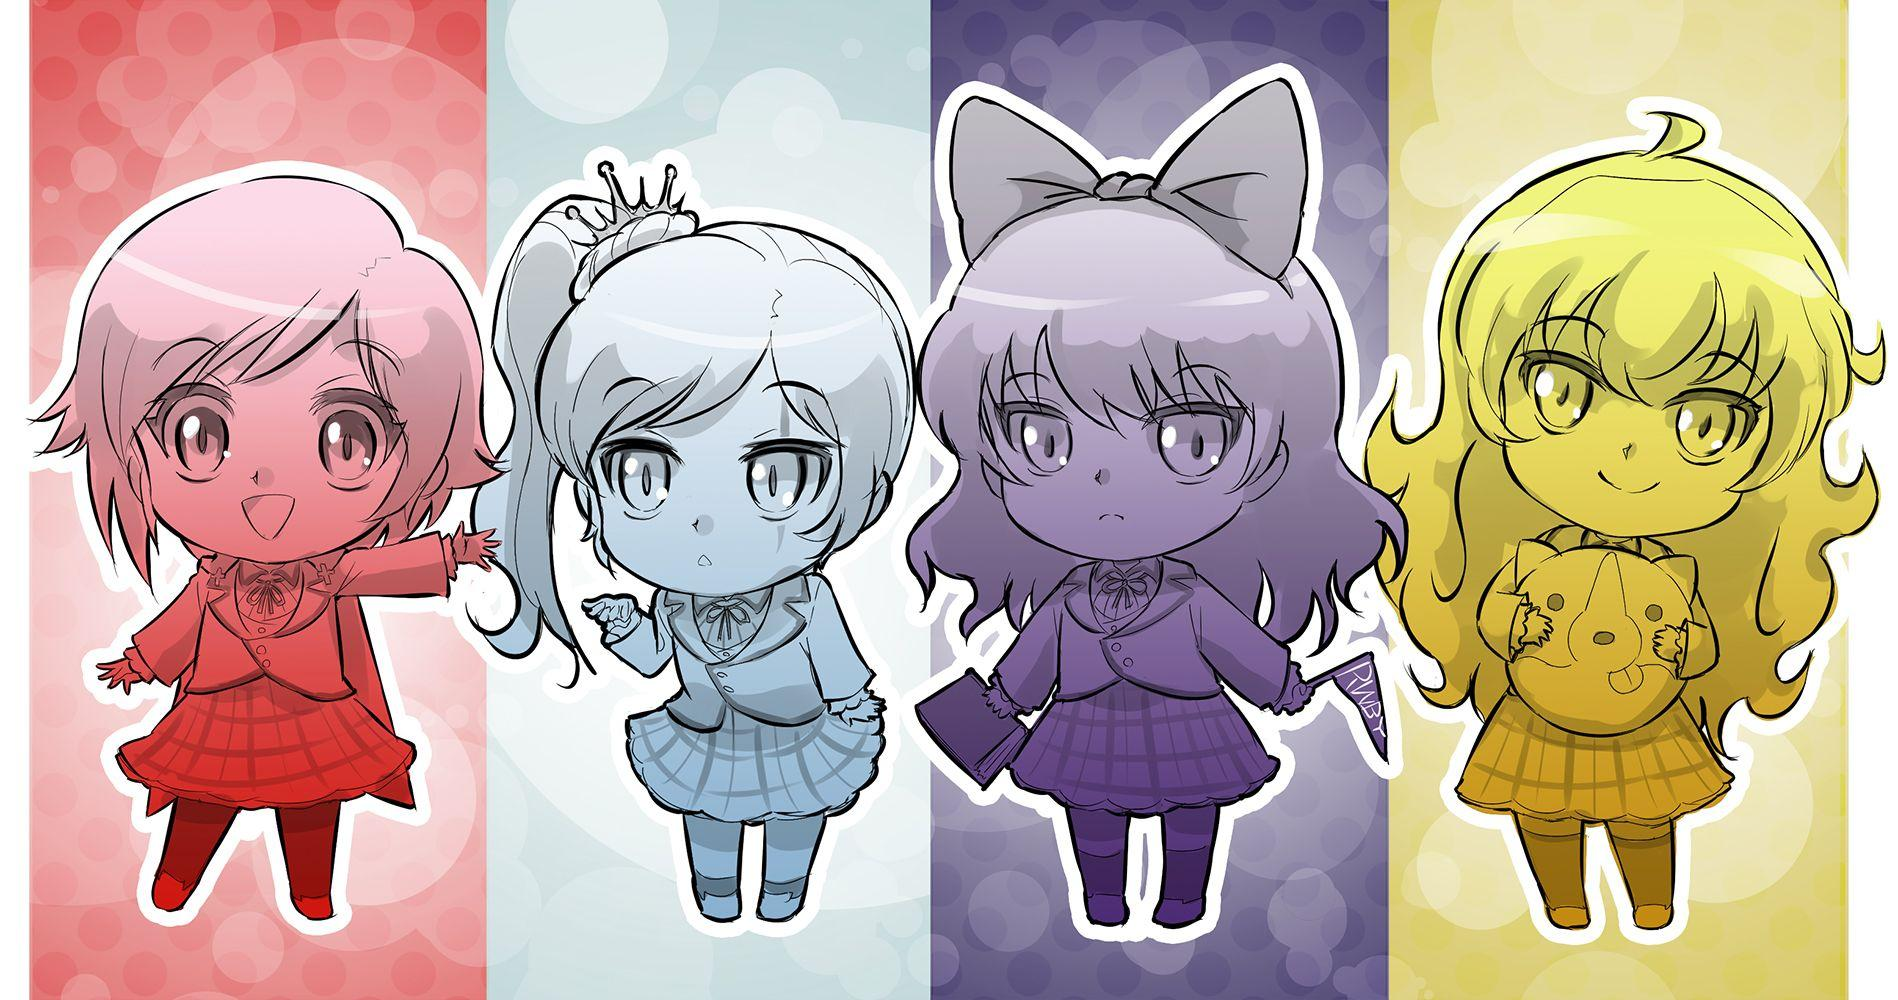 RWBY Chibi Wallpapers - Wallpaper Cave